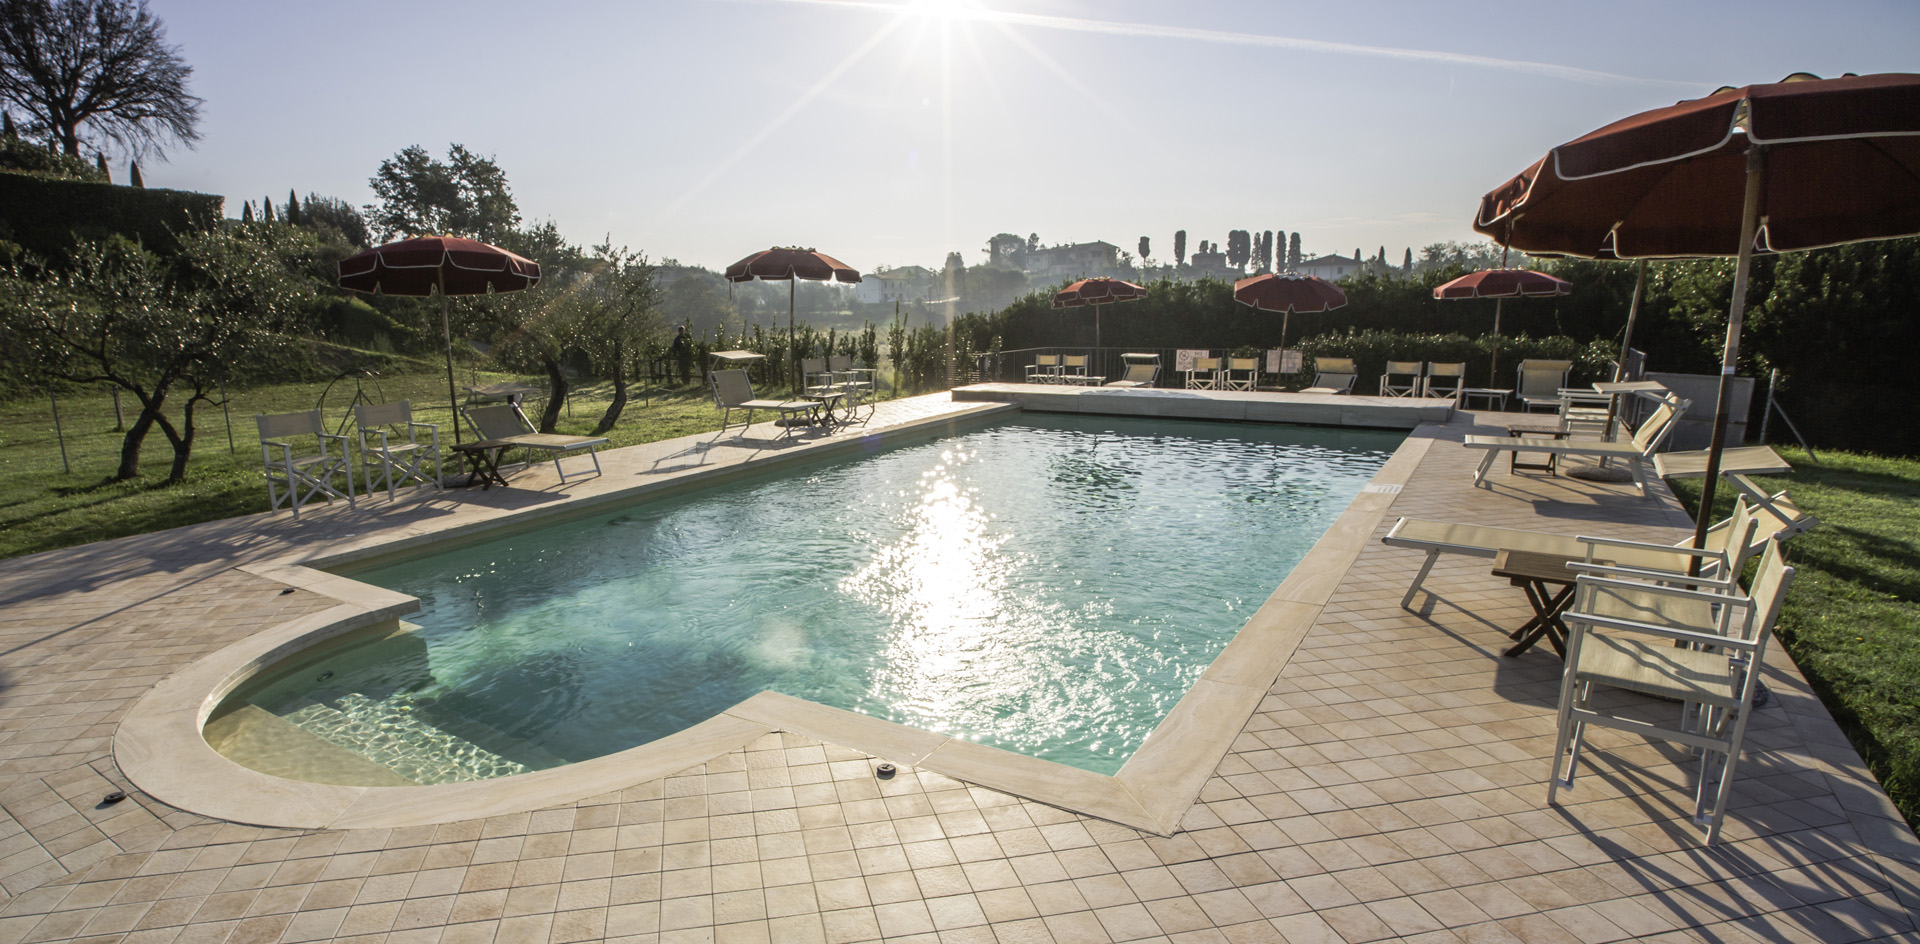 Relax by the pool surrounded by the olive trees and cypresses of Tuscany